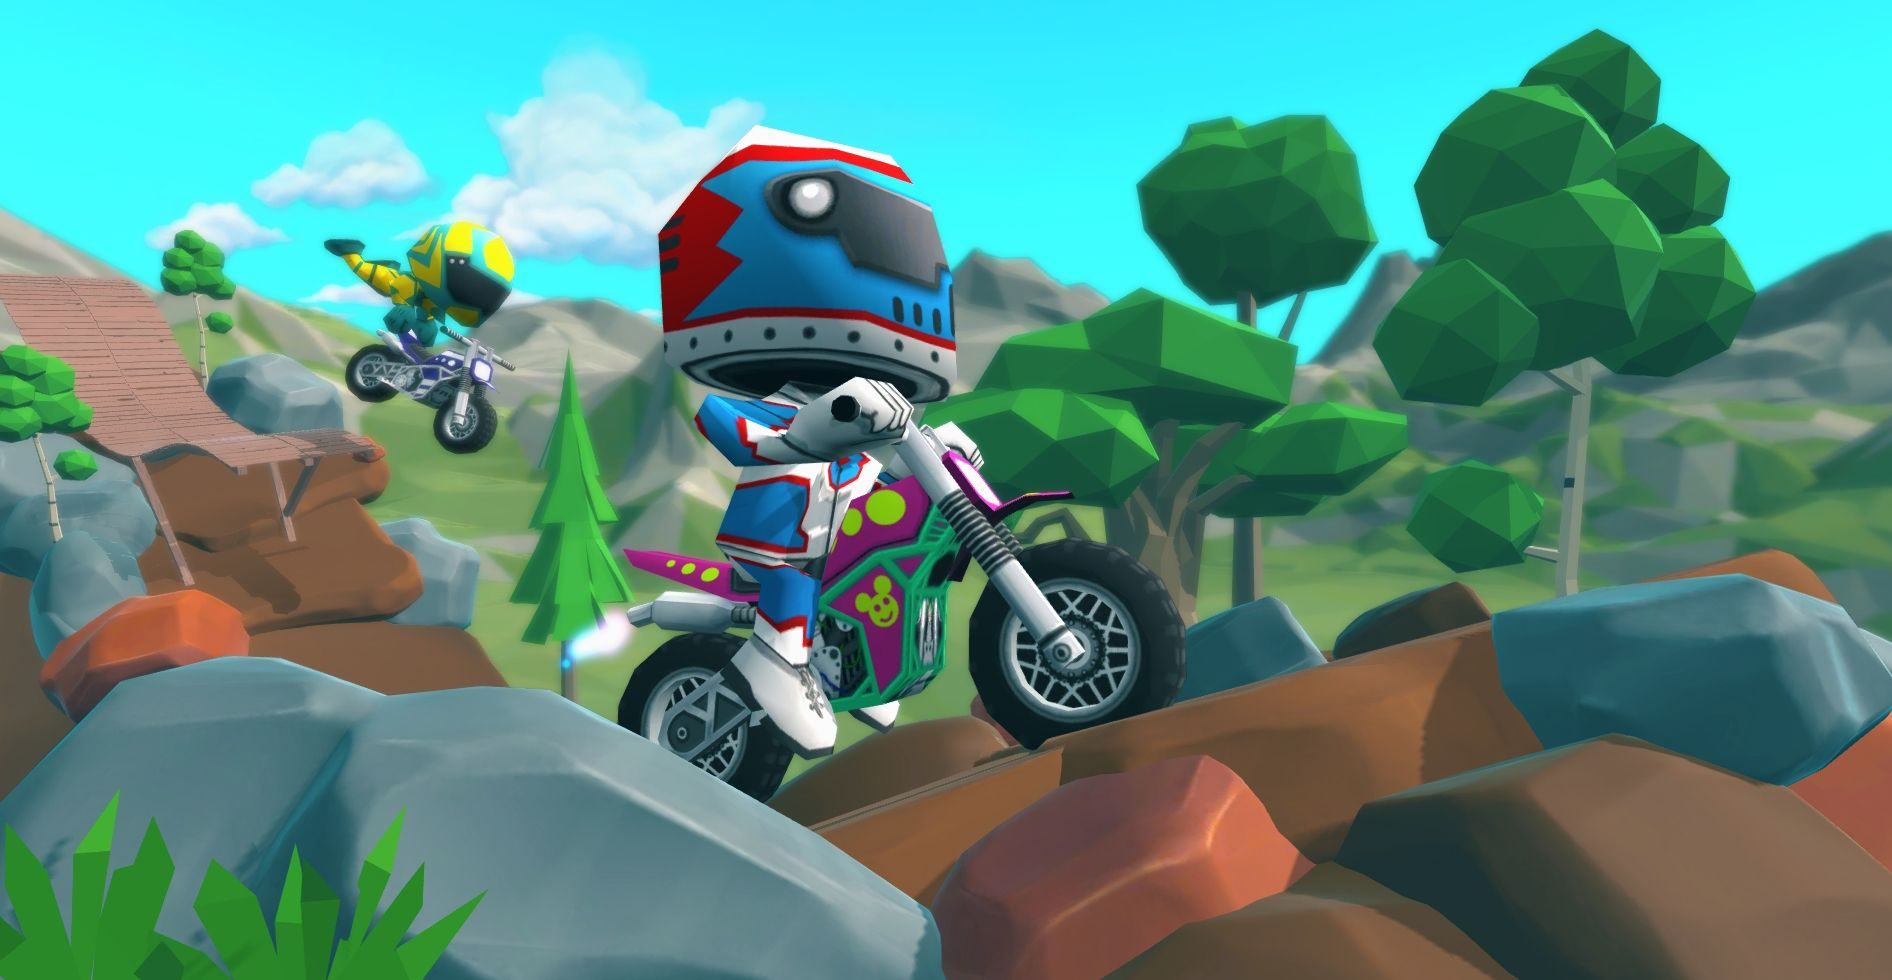 Play The Latest 3d Trial Bike Racing Games Online And Enjoy With